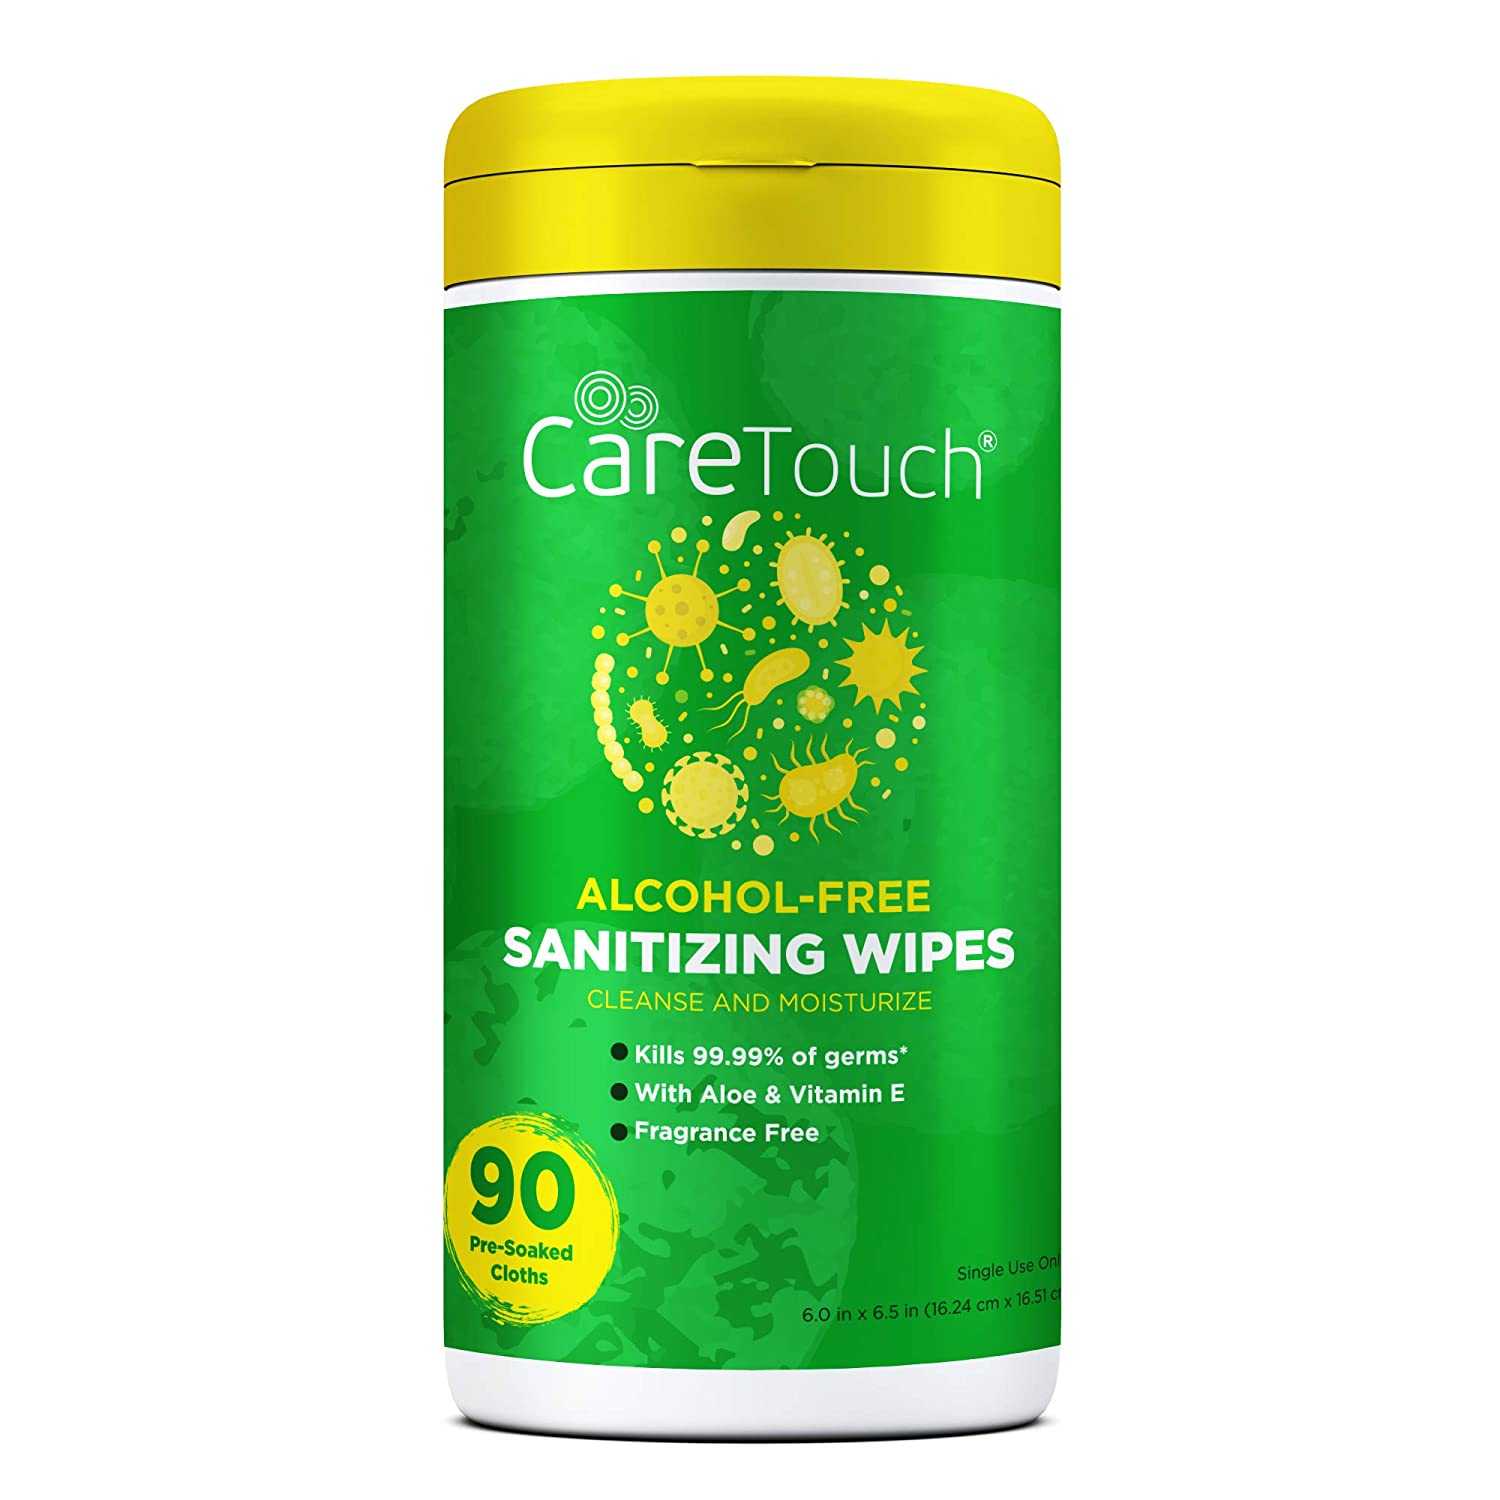 Care Touch Alcohol-Free Hand Sanitizing Wipes - 1 Canister | 90 Antibacterial Wipes with Vitamin E + Aloe Vera | Made in The USA